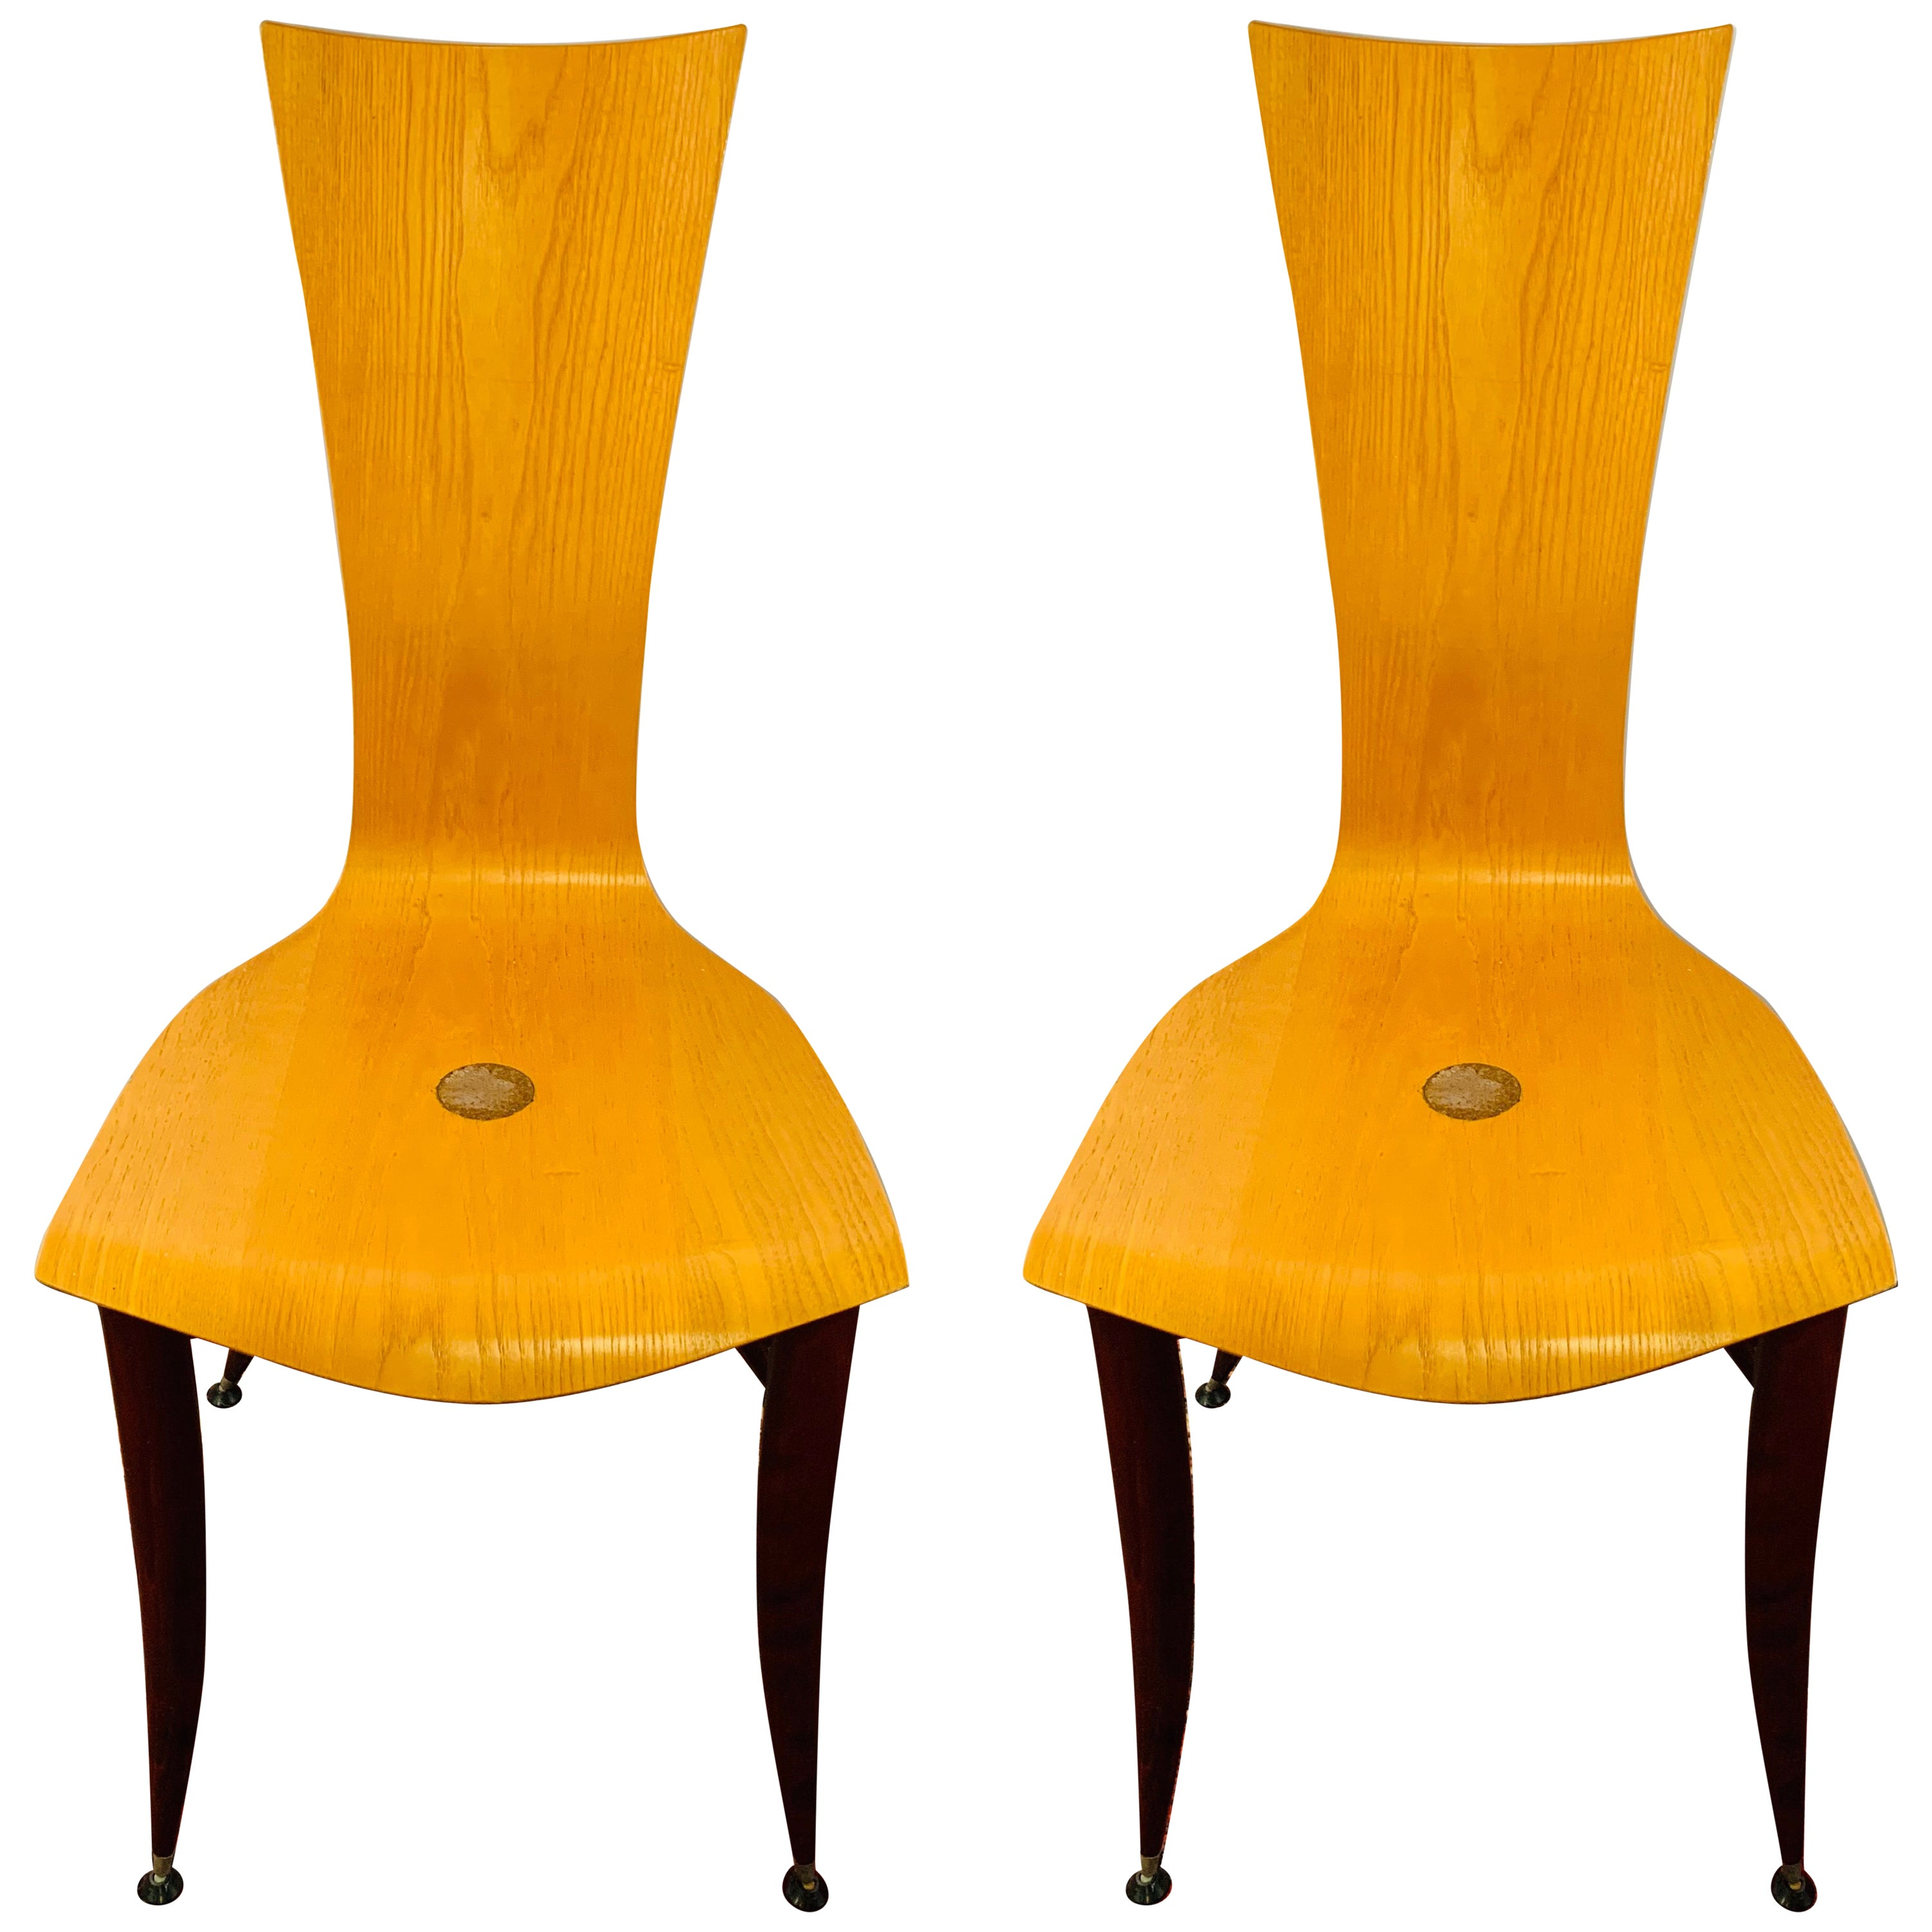 Italian MCM Wooden Chair in the Manner of Umberto Mascagni, a Pair